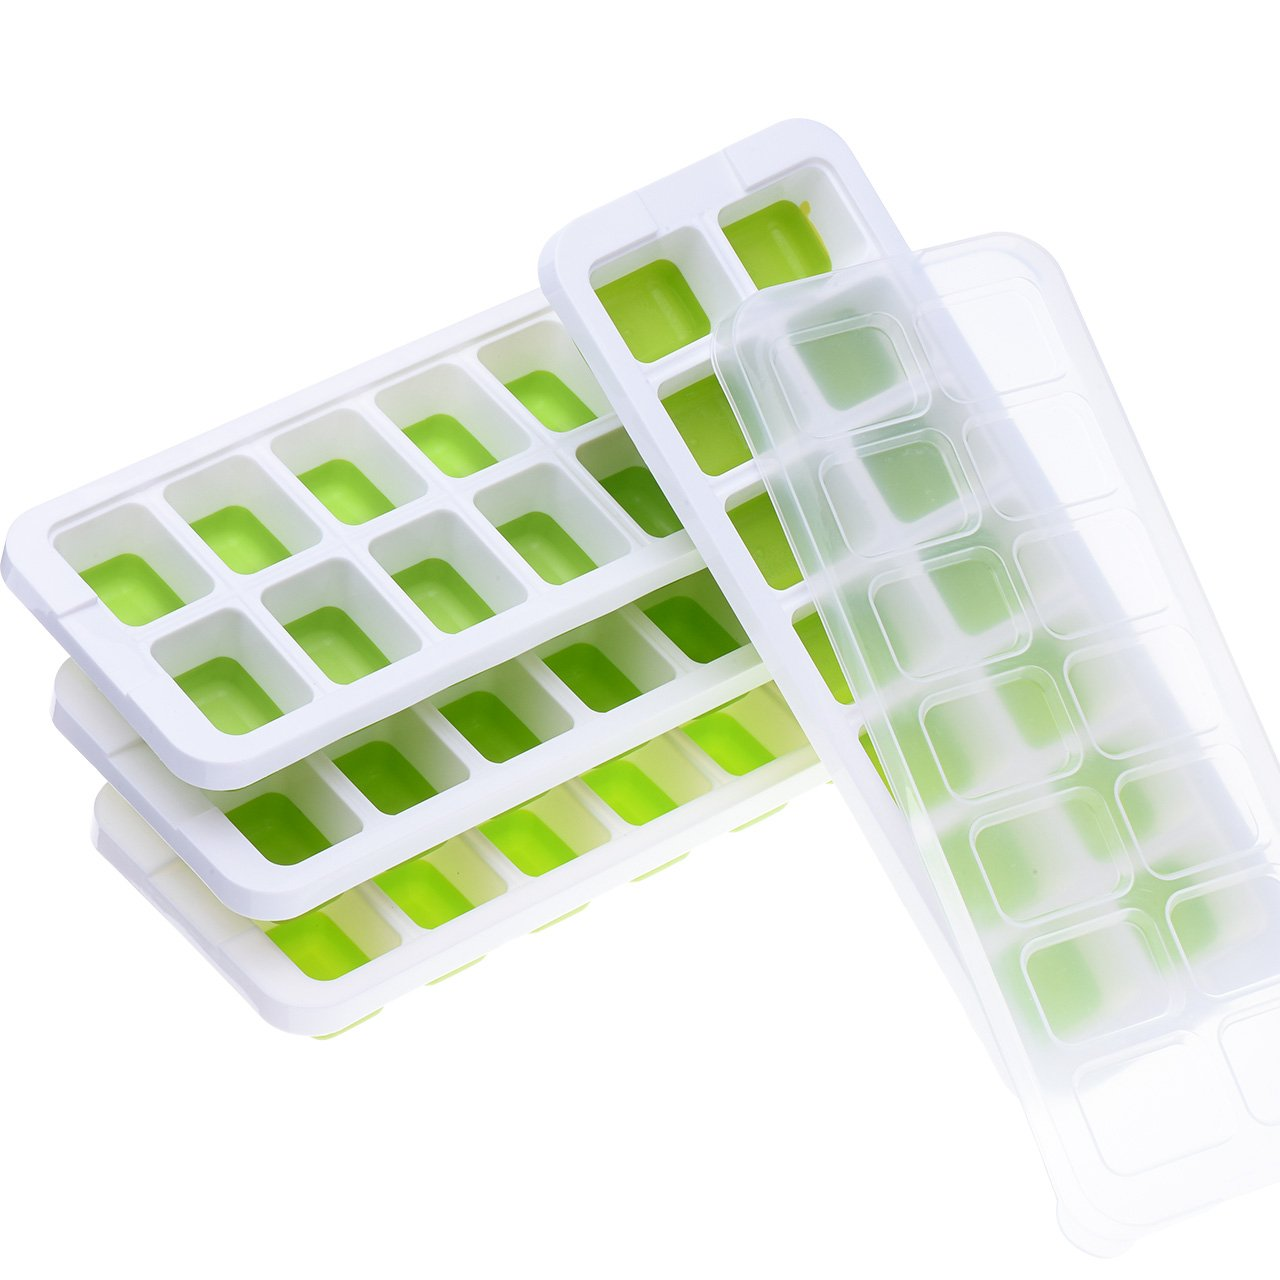 TOPTRAY Ice Cube Trays 4 Pack, Easy-Release Silicone and Flexible 14-Ice Trays with Spill-Resistant Removable Lid and Unique Water Channel Design, BPA Free Stackable and Durable